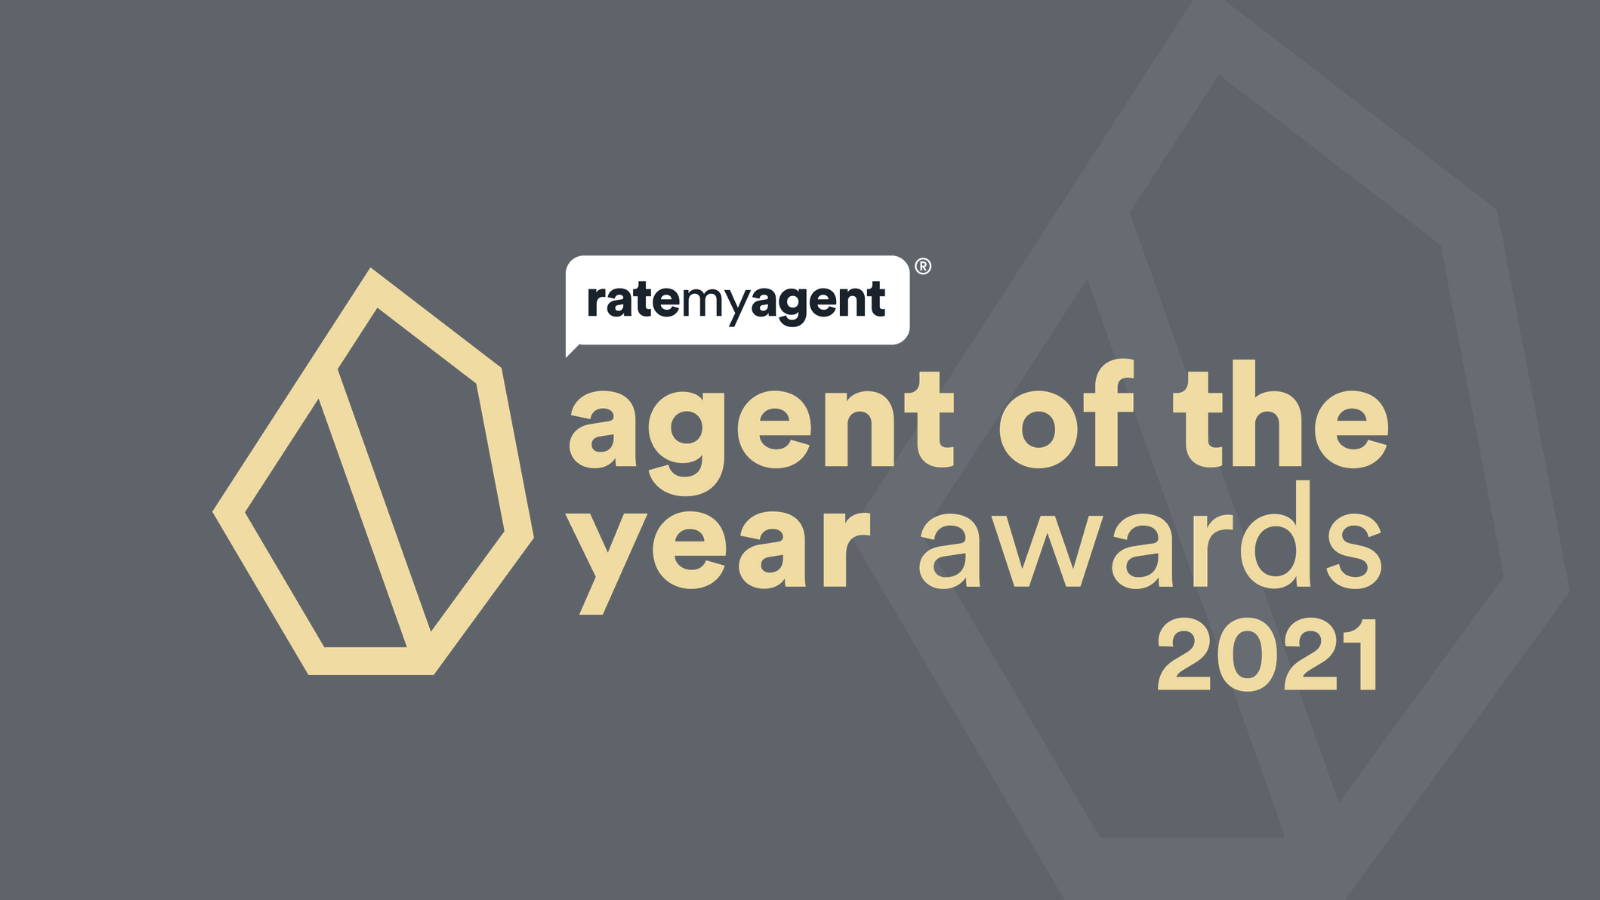 Award Assets | RateMyAgent 2021 Agent of the Year Awards